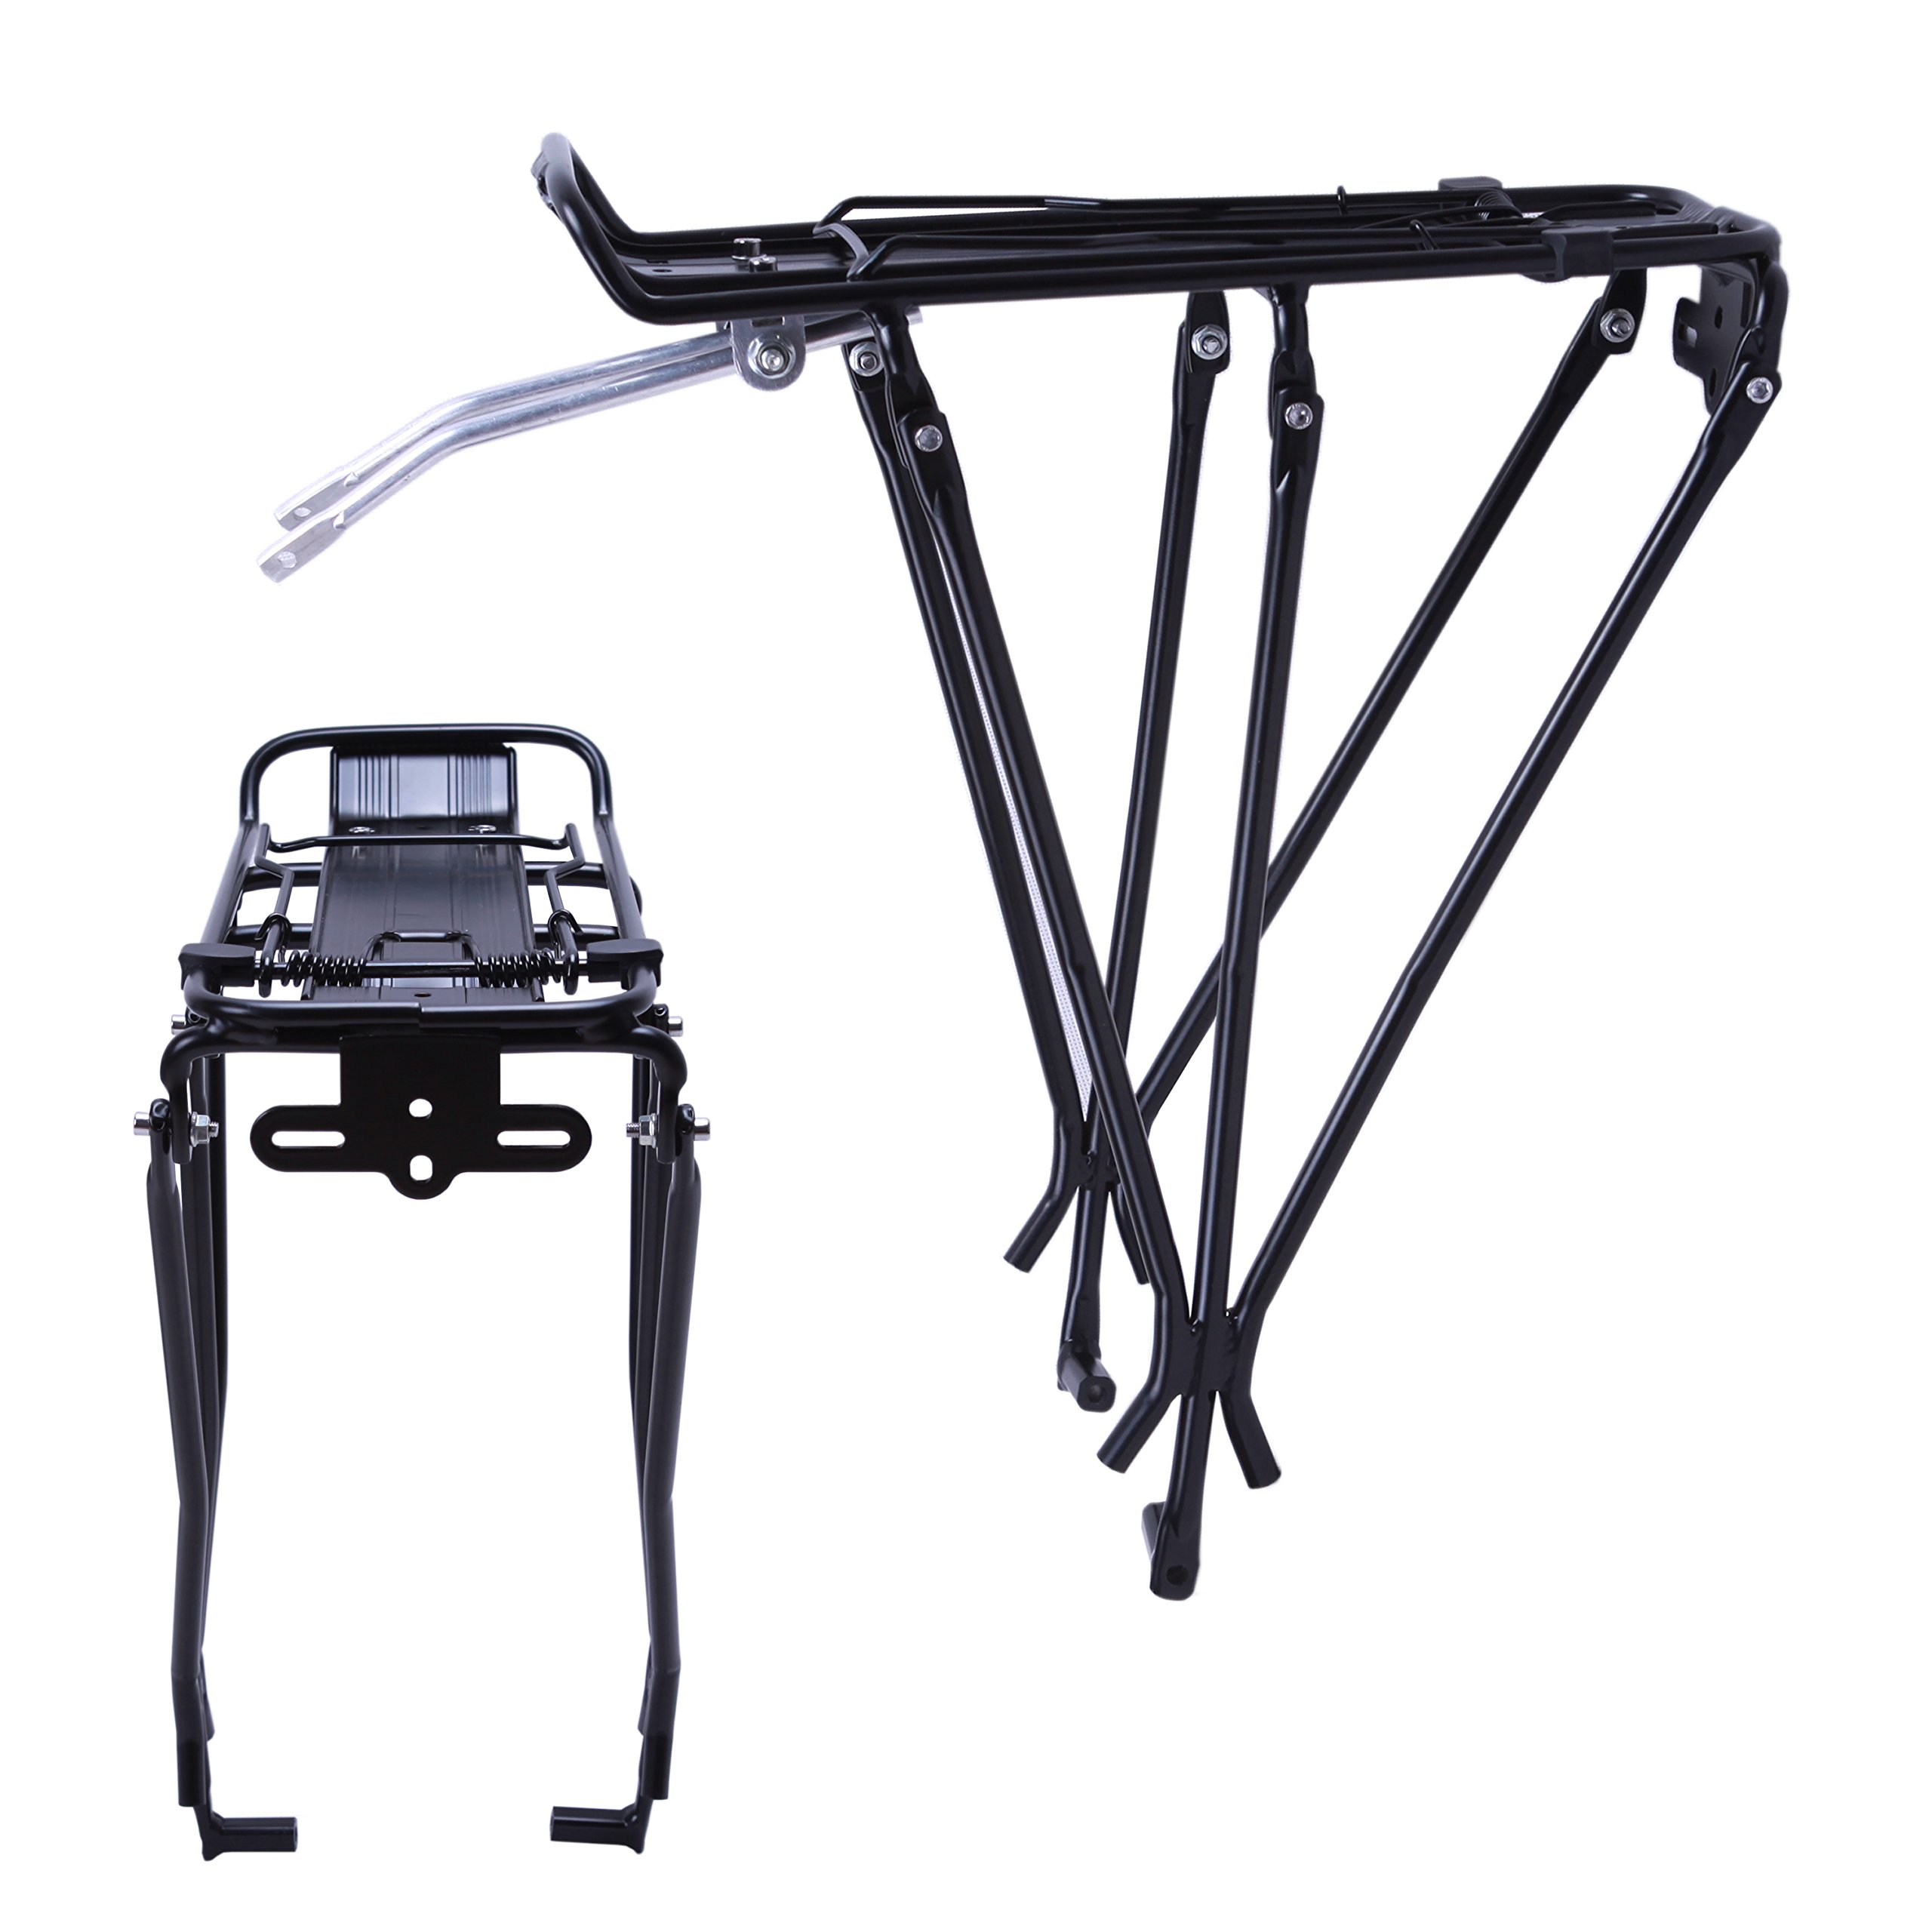 VILOBYC Bicycle Rear Cargo Rack Carrier Luggage Rack Pannier Rack for Disc Brake Bikes